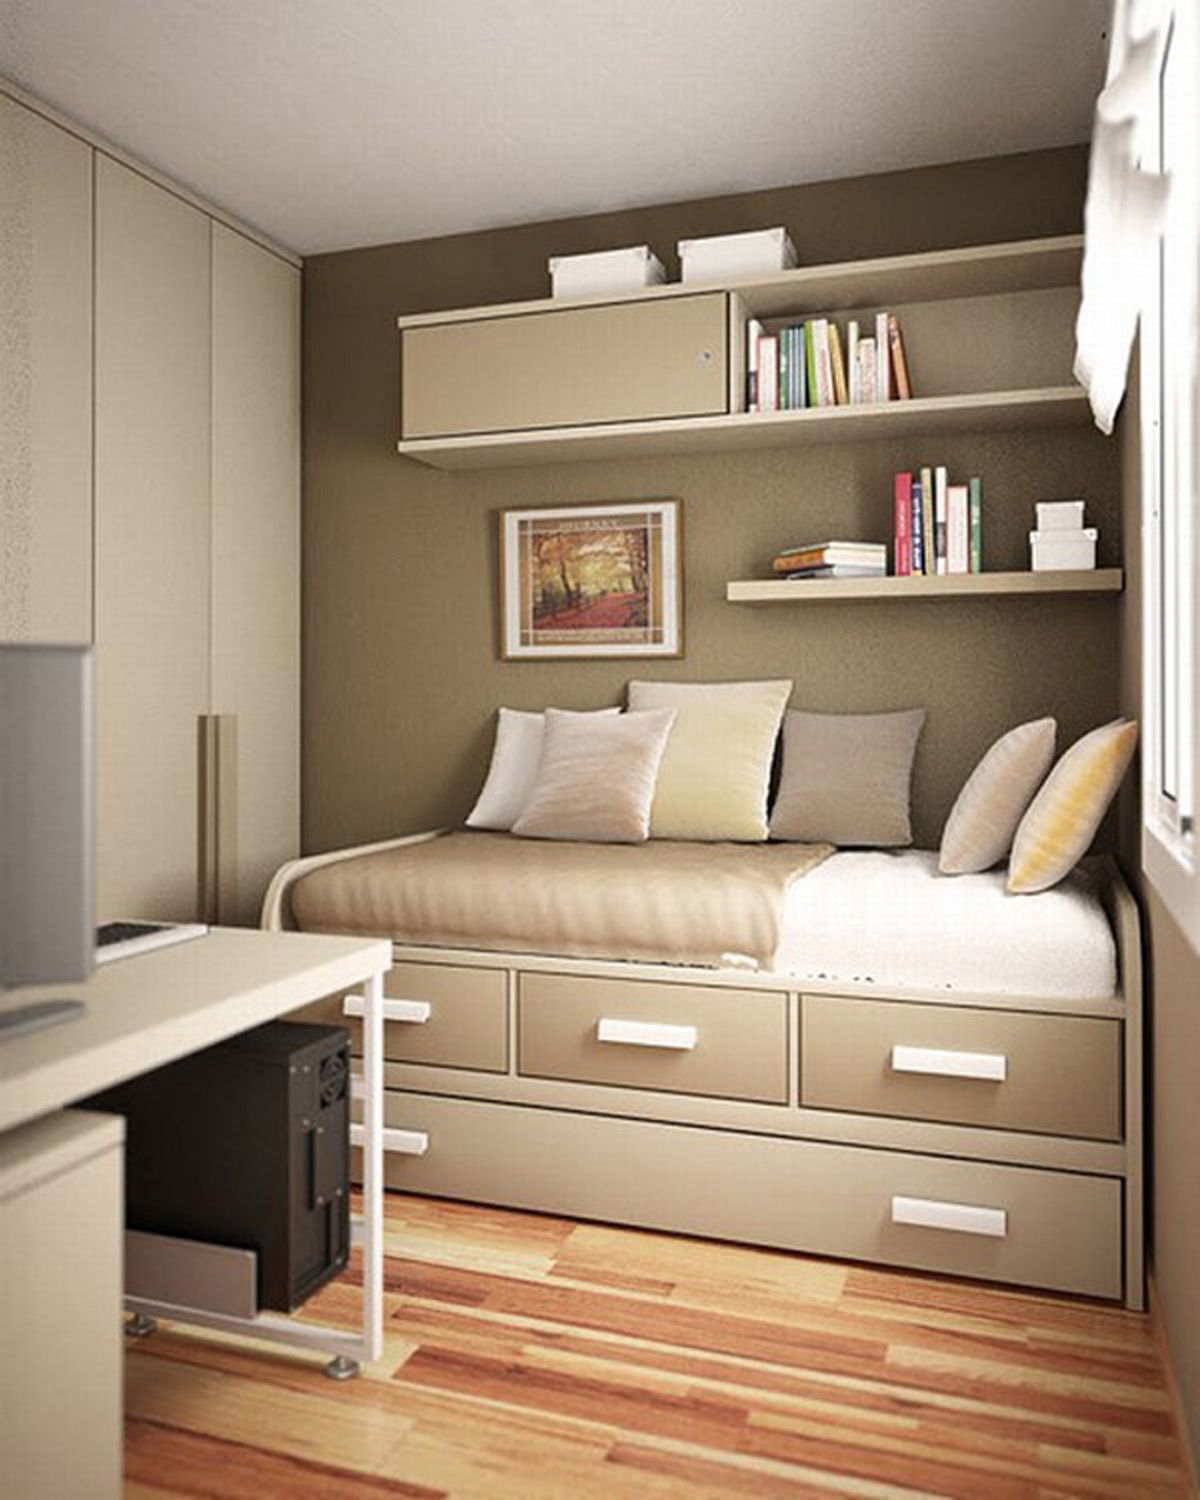 Contemporary Small Bedroom Ideas Bedrooms Storage design and